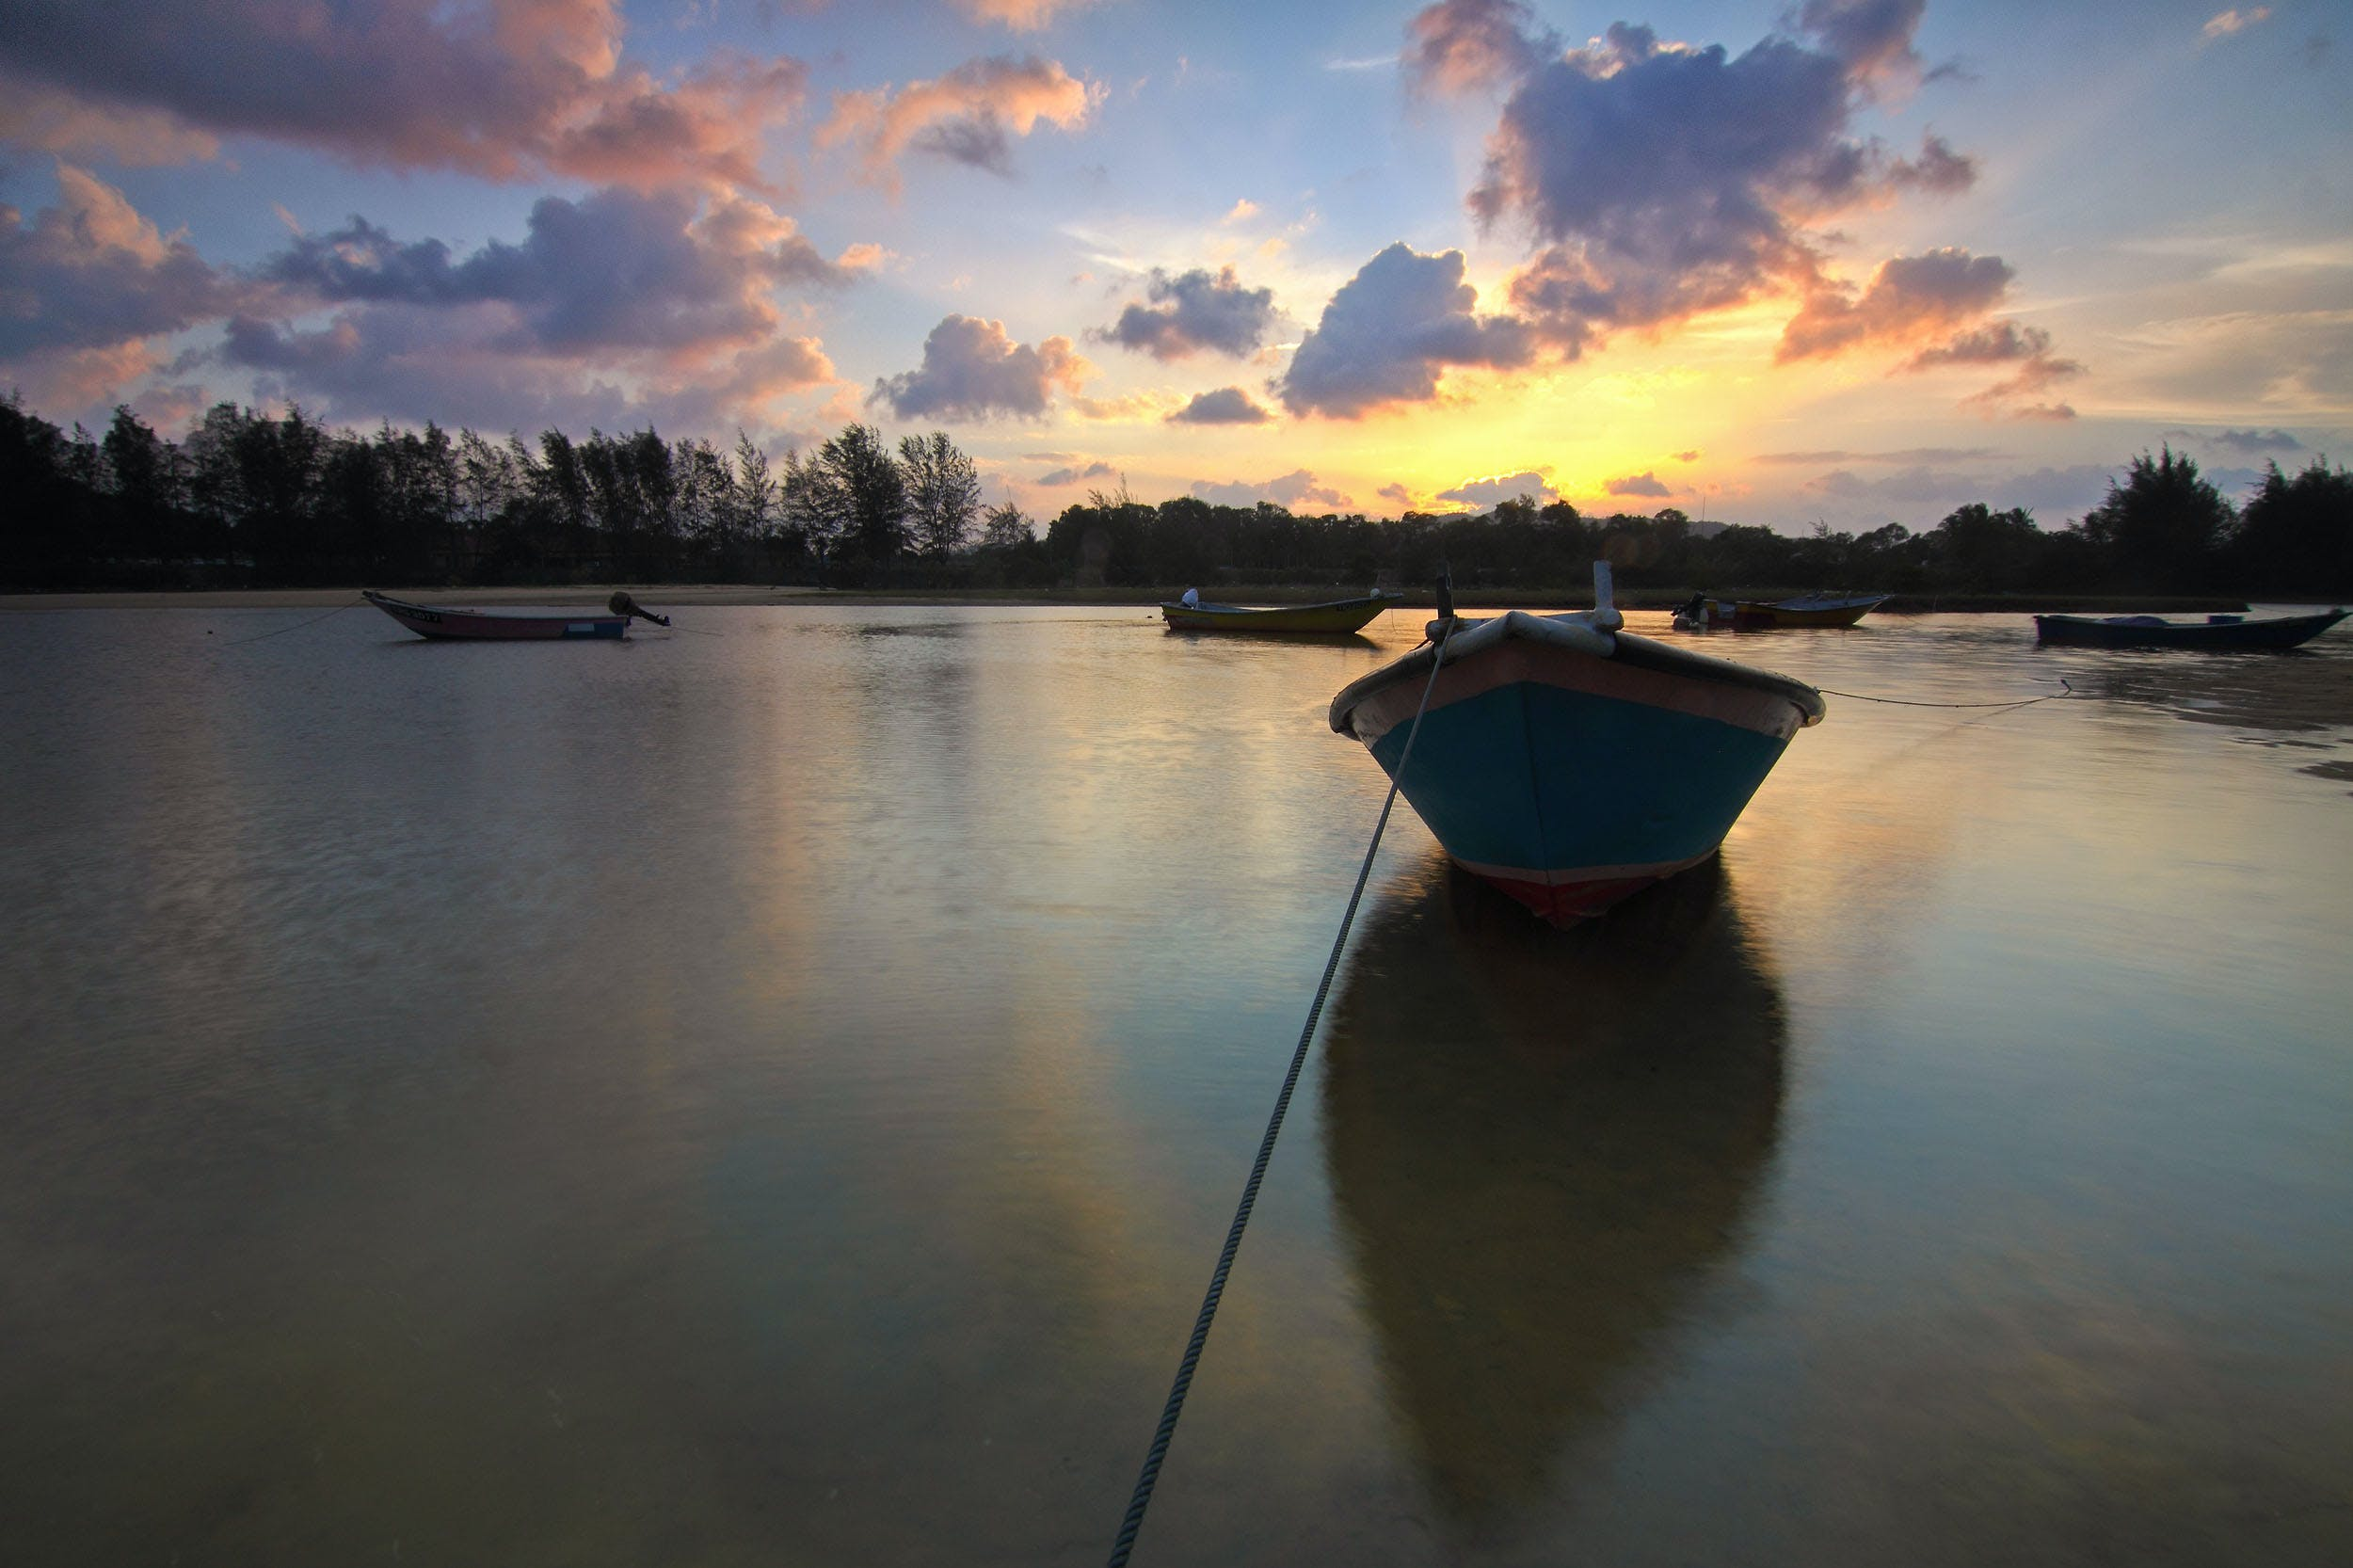 Silhouette of Boat on Body of Water